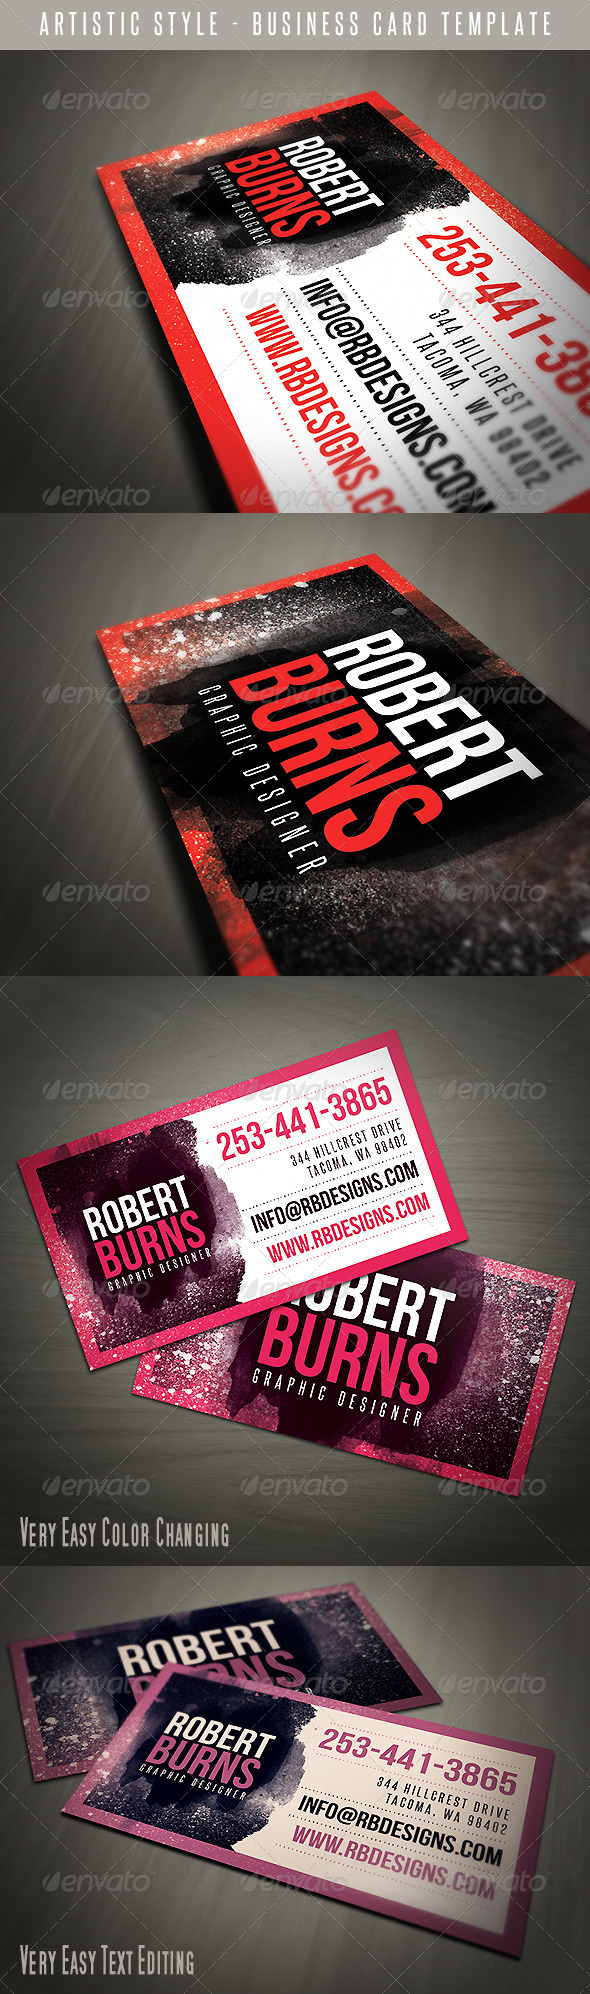 GraphicRiver Artistic Business Card 4661990